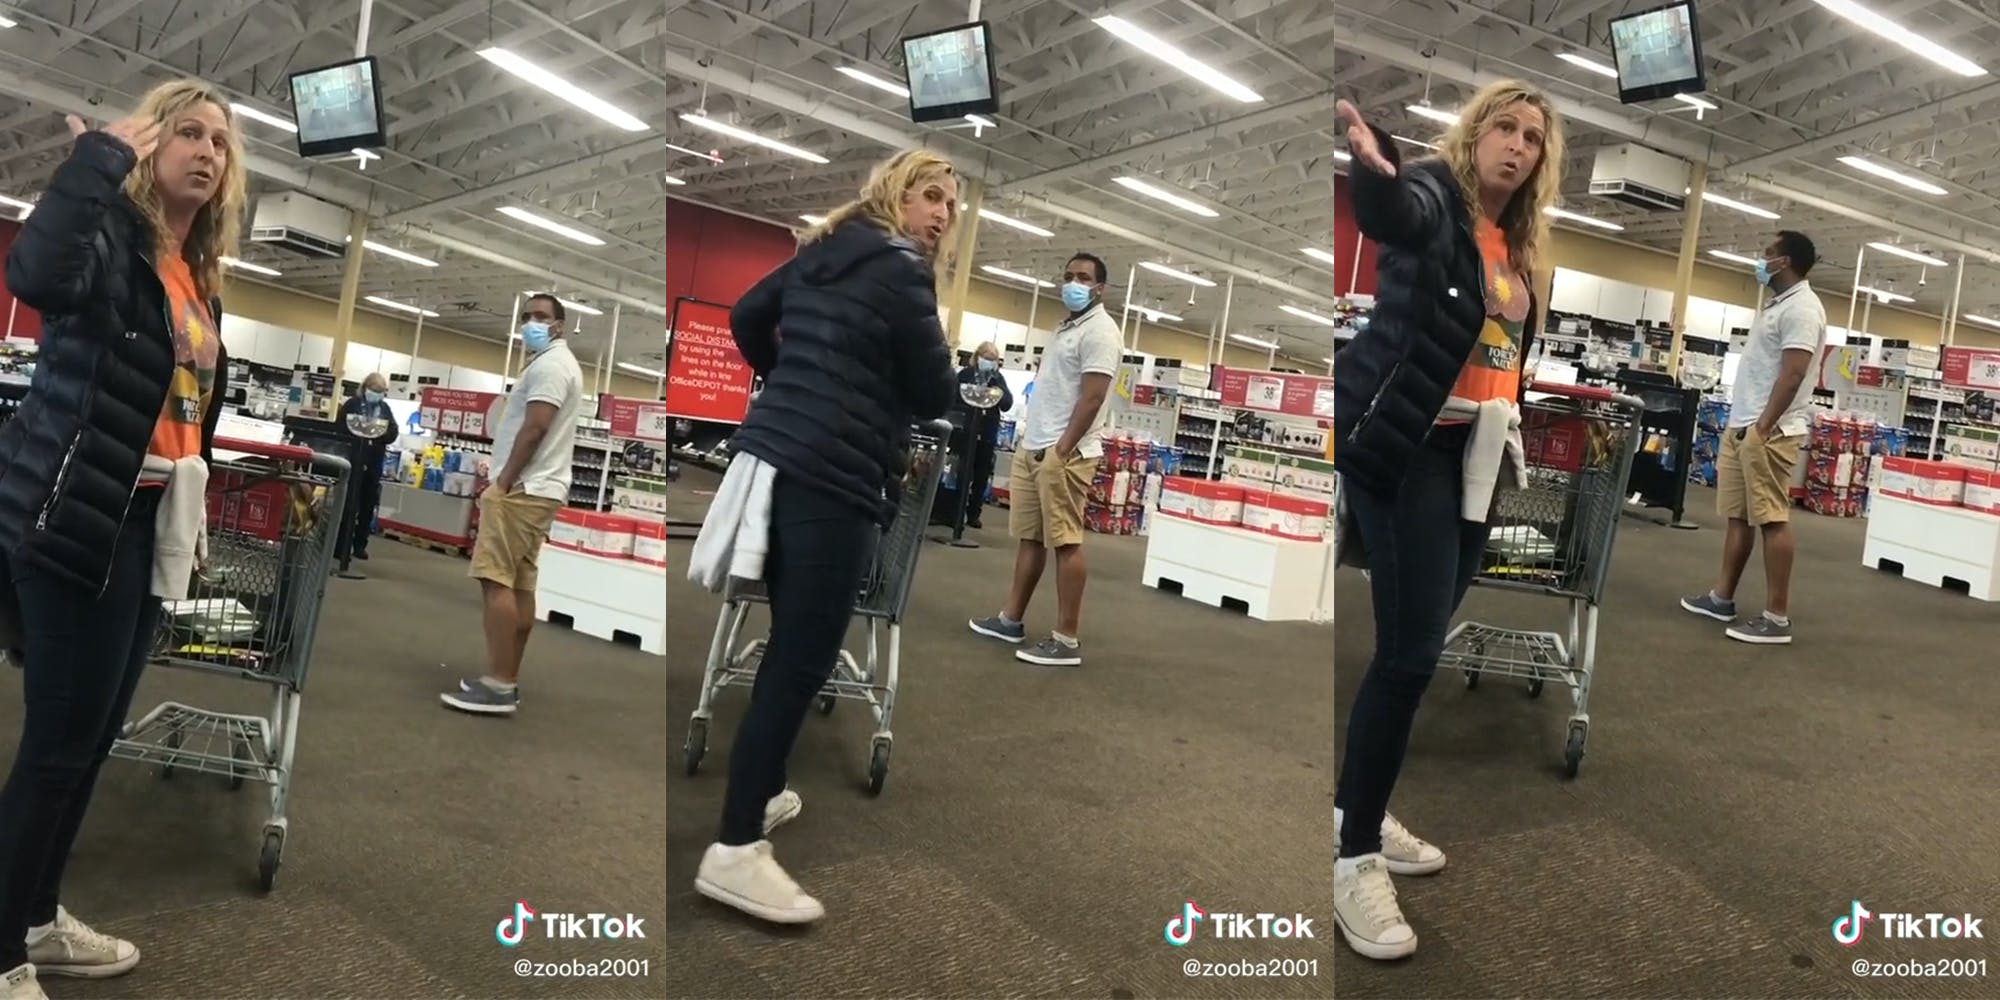 Woman in store without mask, gesturing